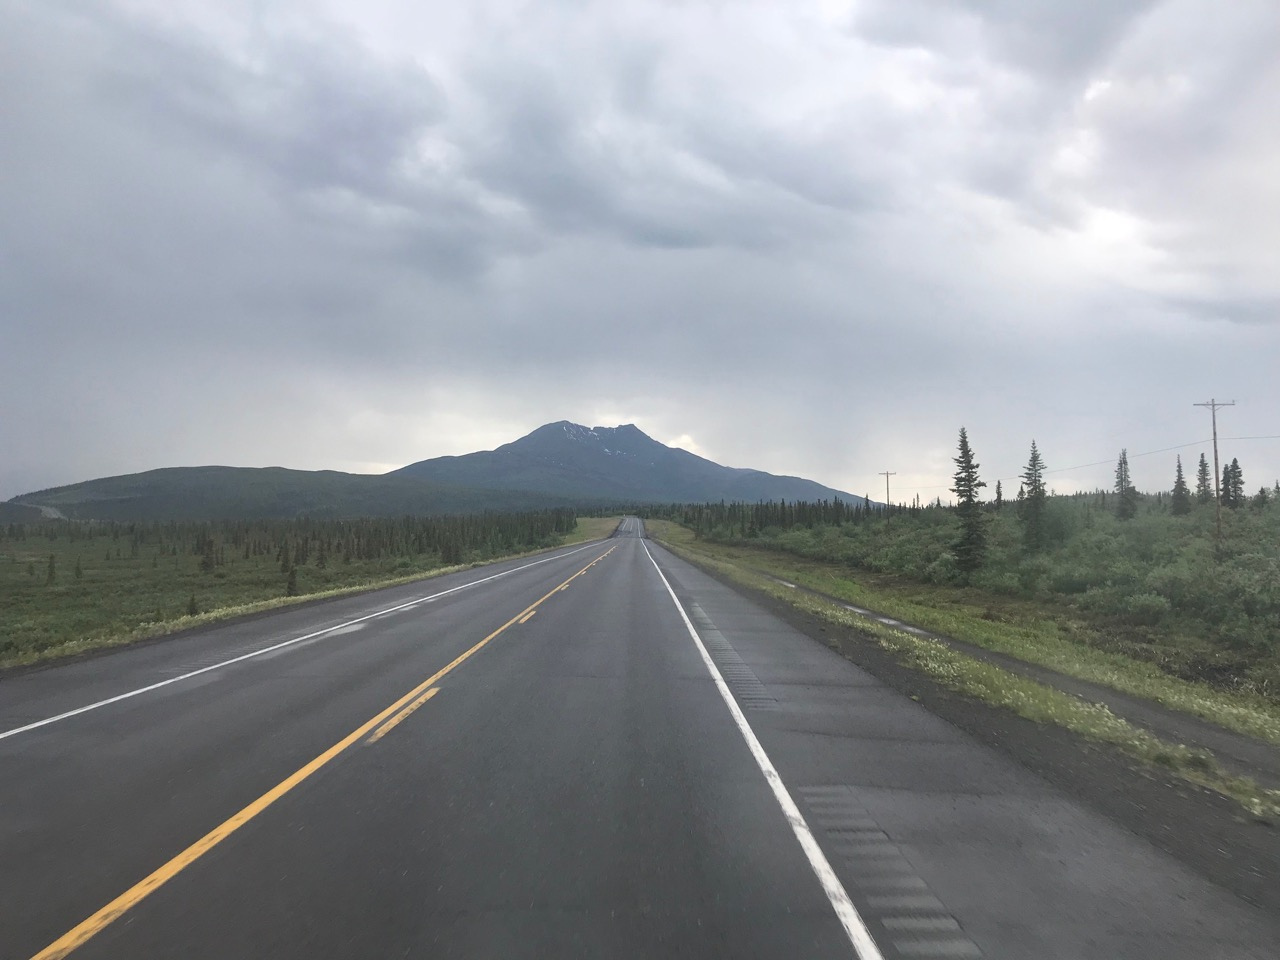 Headed west on the Glenn Highway, with Gunsight Mountain in the distance.